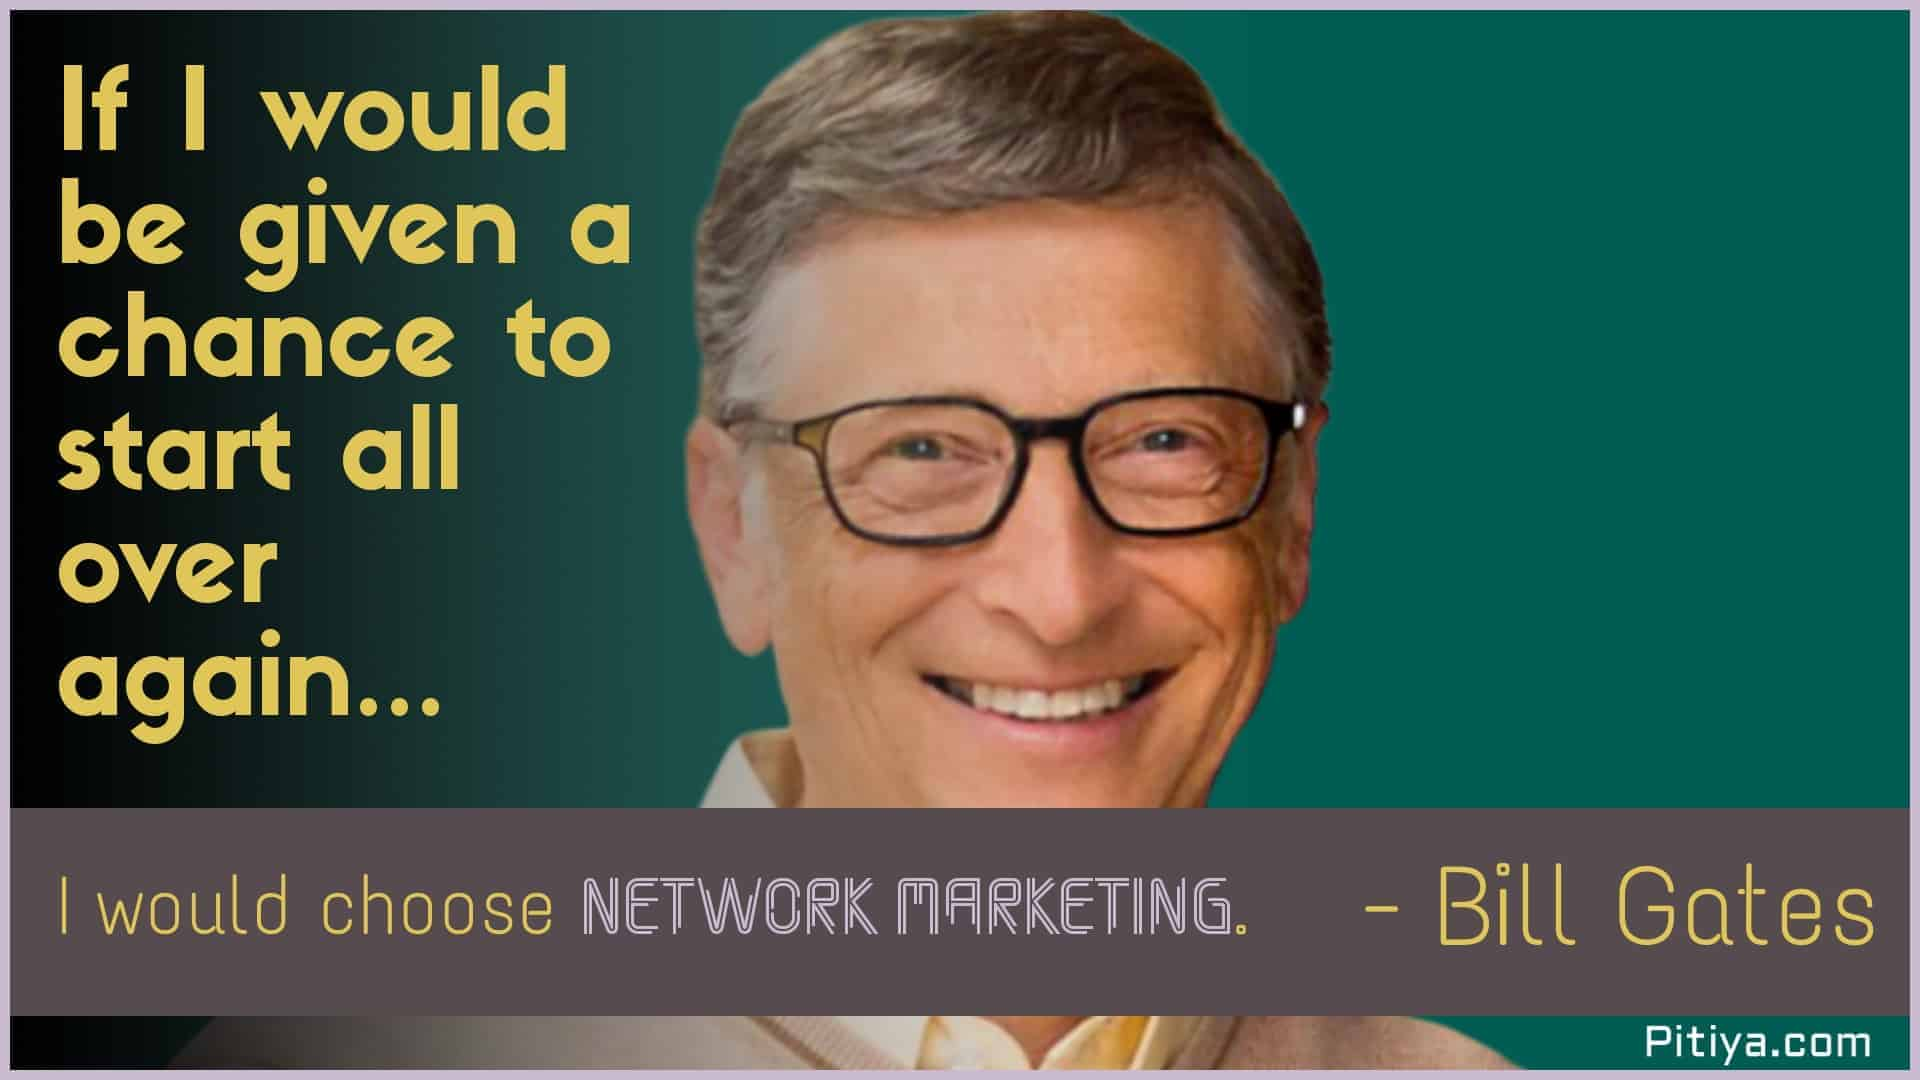 quote-network-marketing-bill-gates